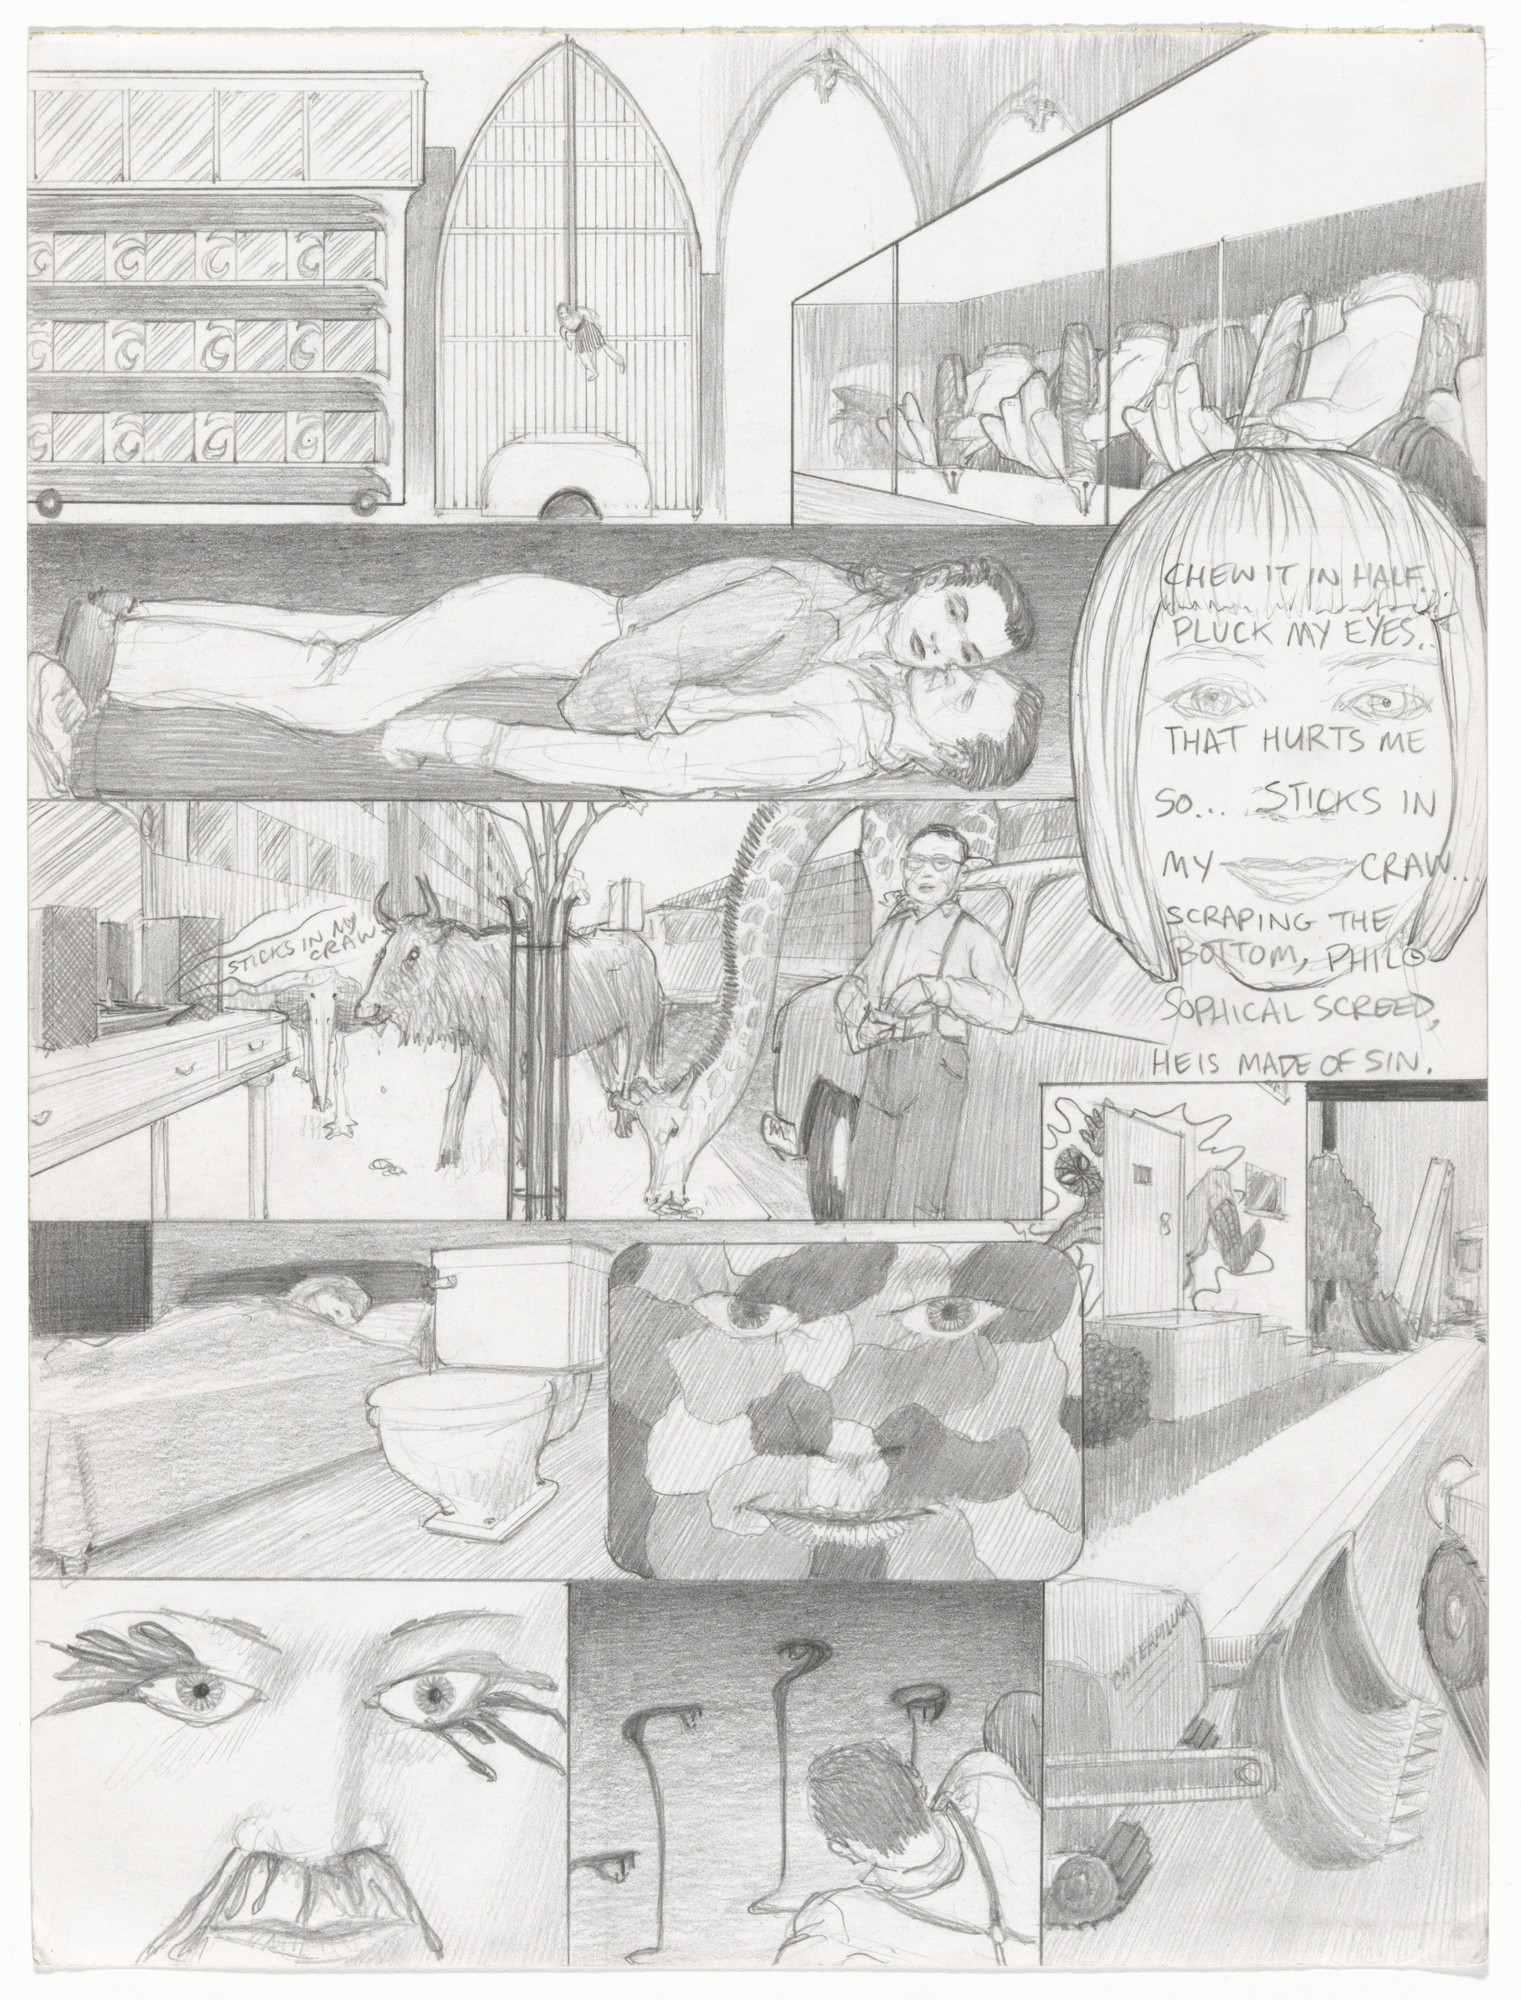 Jim Shaw. Dream Drawing (In Reno there was a Titanic mockup where a girl...). 1998